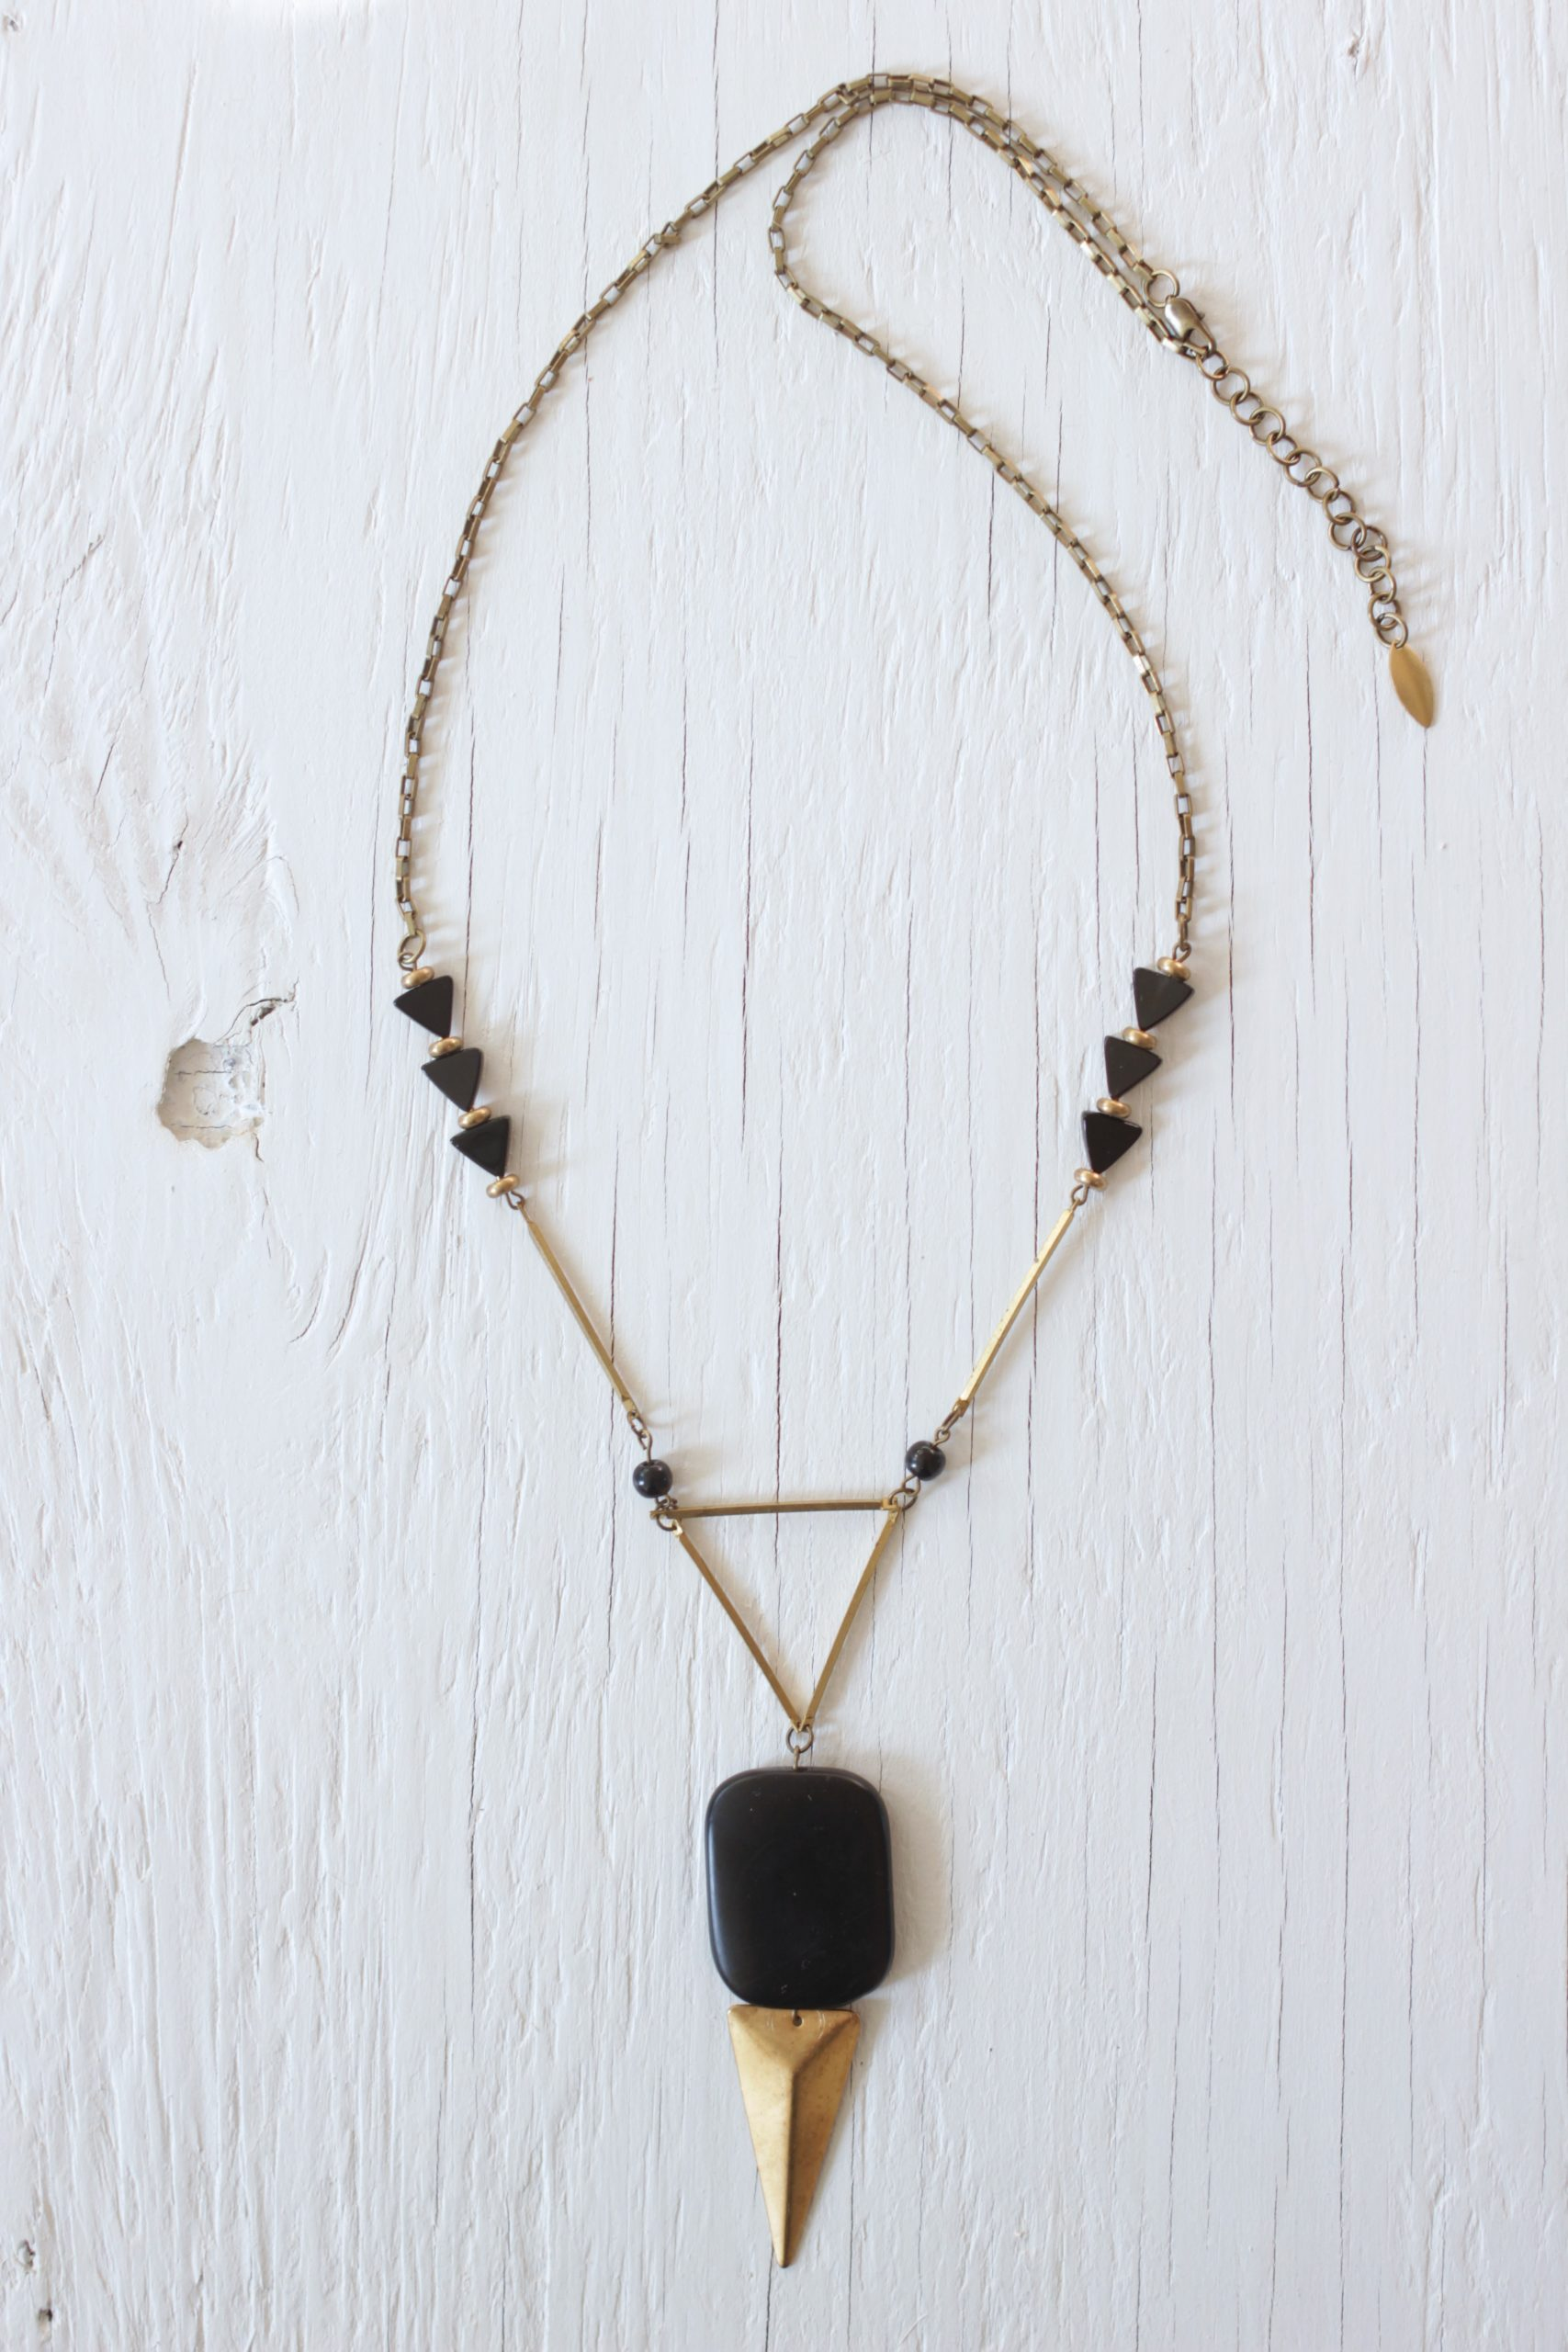 Off Center Geometric Beaded Necklace Black Beaded Necklace Triangle Necklace